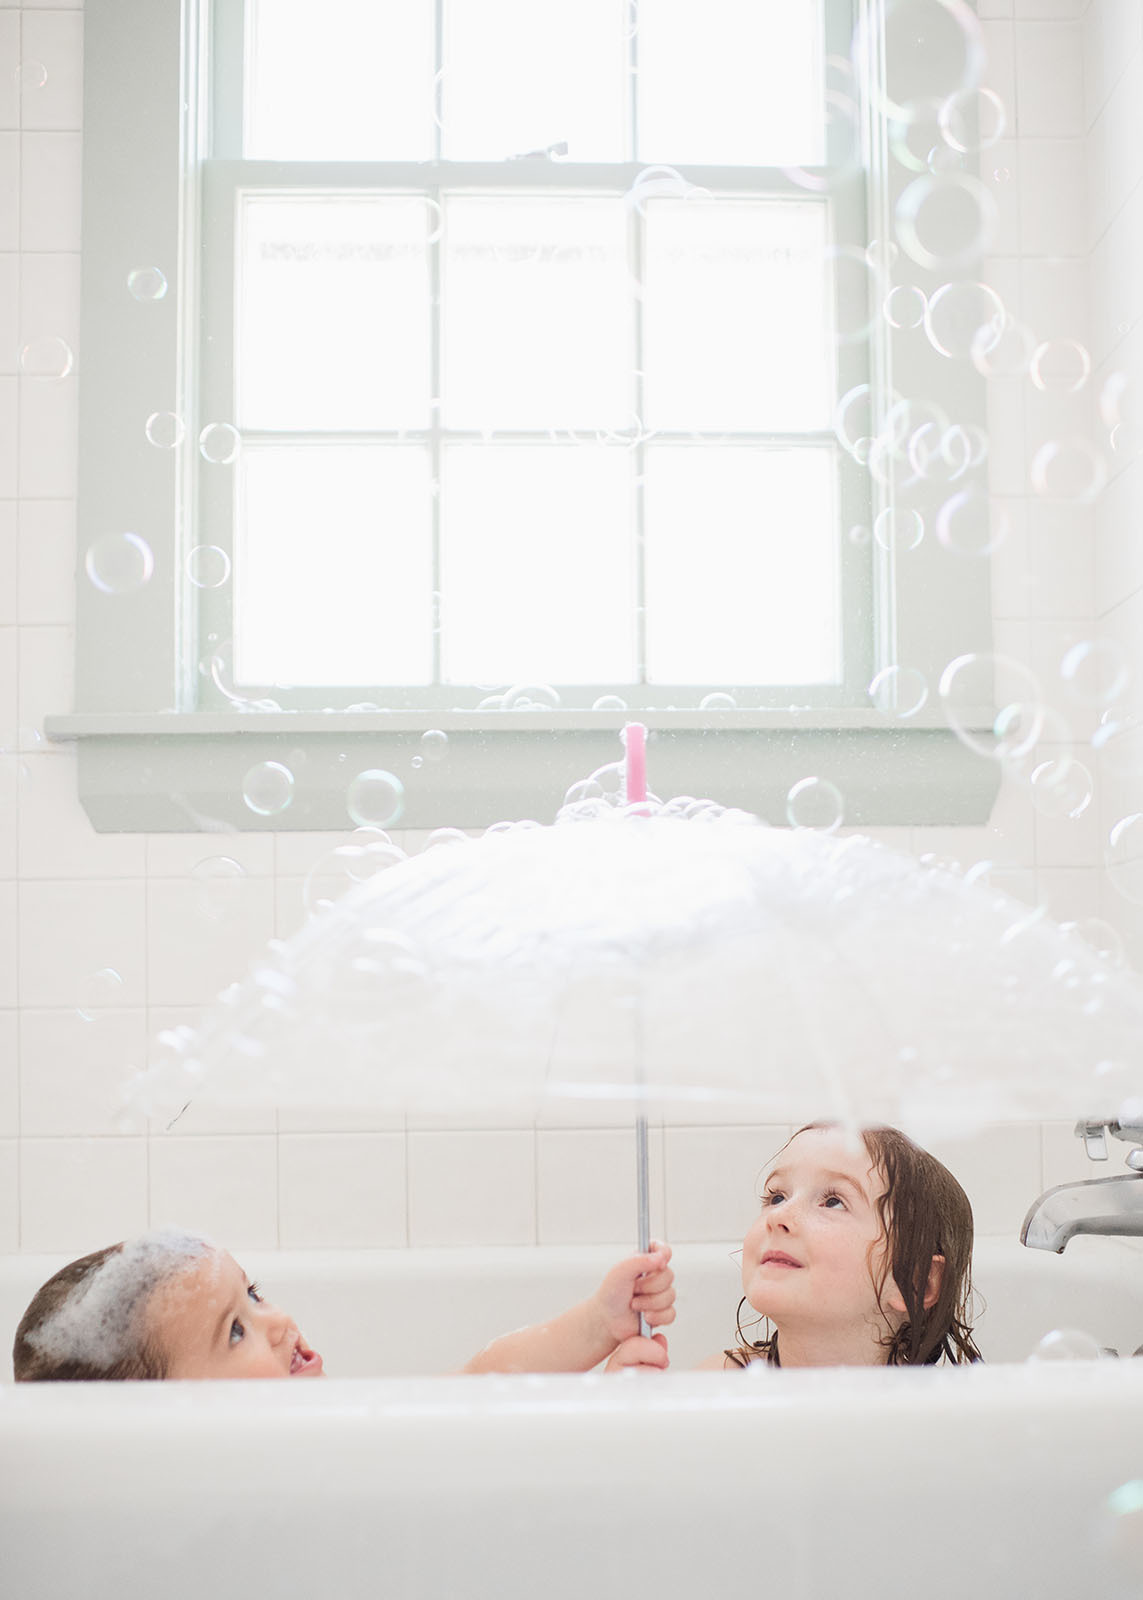 kids playing with an umbrella and bubbles in the bathtub by Liza ...